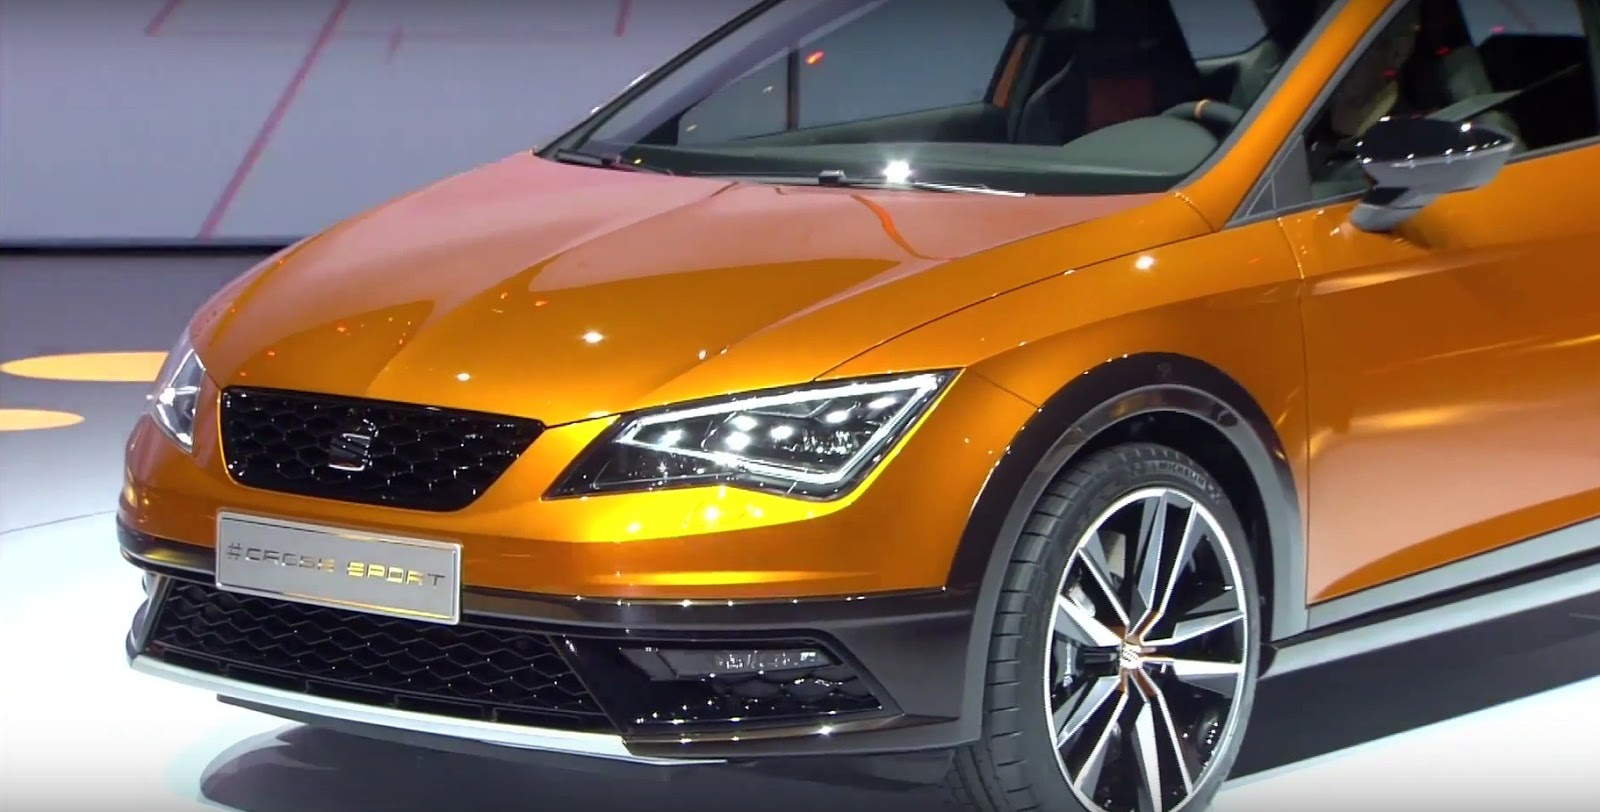 frankfurt 2015 seat leon cross sport concept 2016 live photos garage car. Black Bedroom Furniture Sets. Home Design Ideas